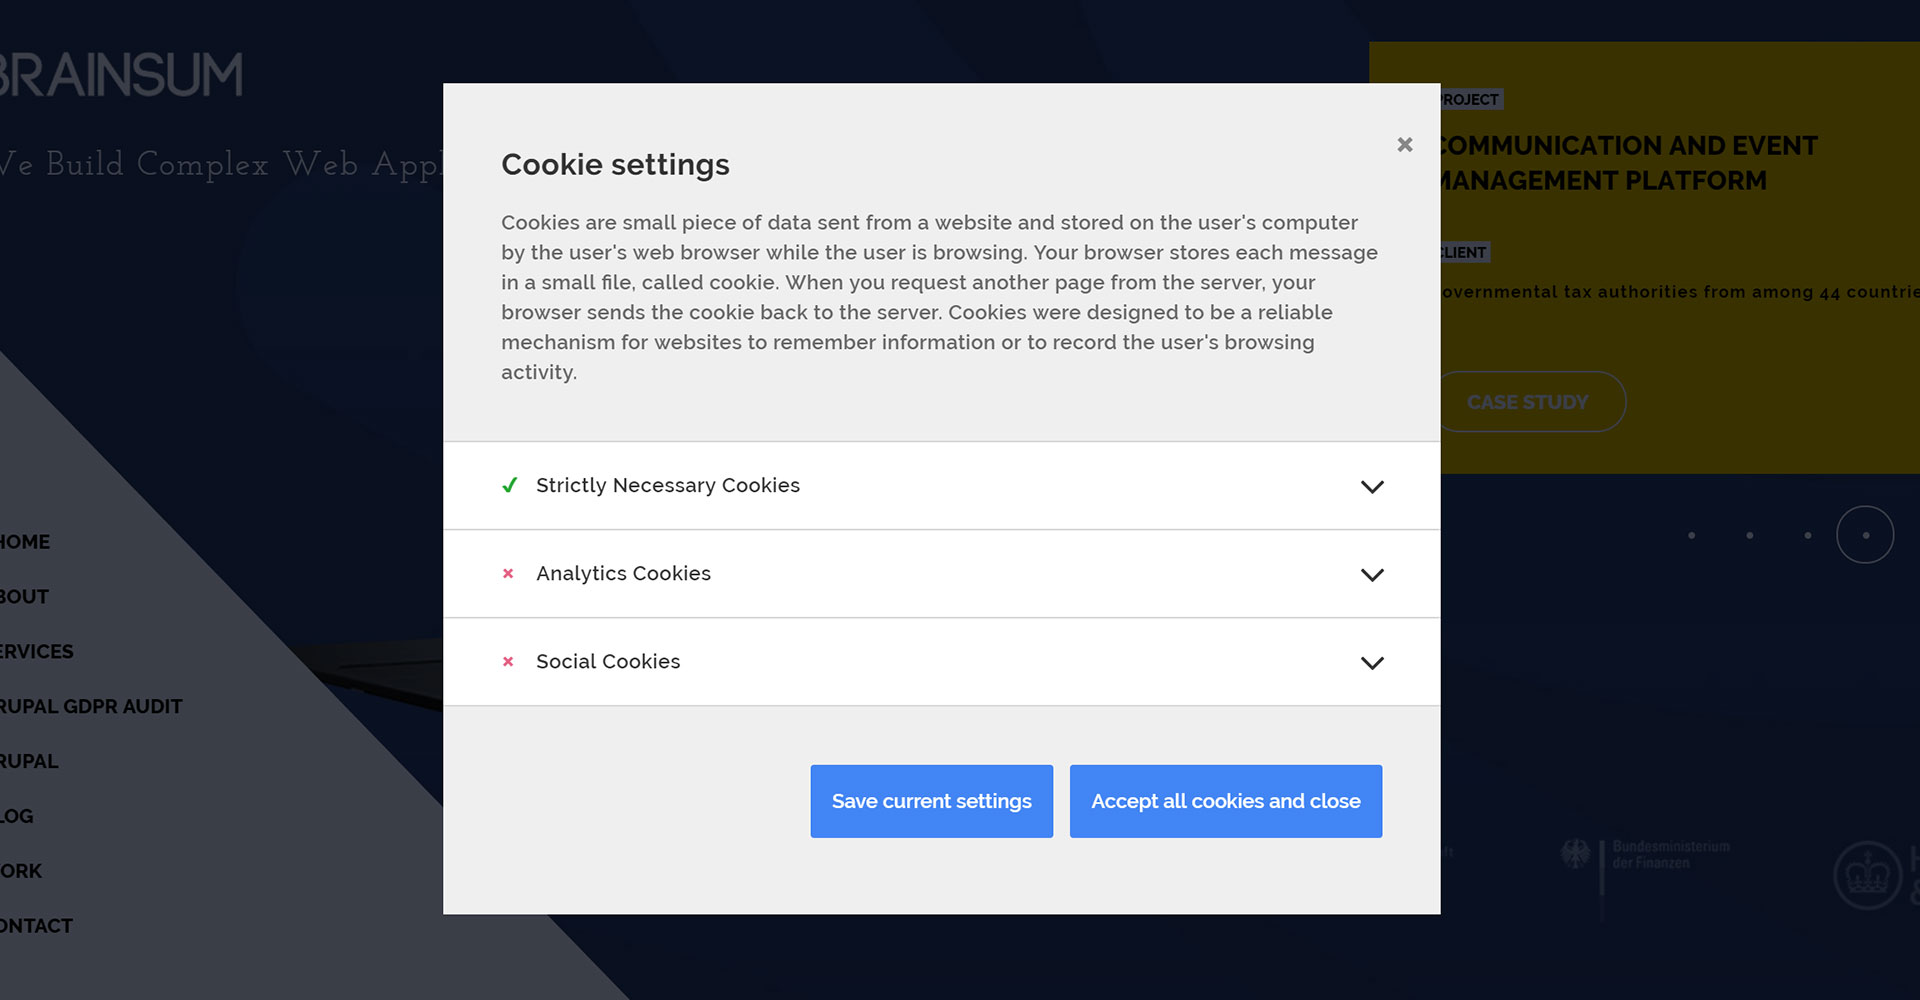 Open source cookie consent tool by BRAINSUM and Tieto